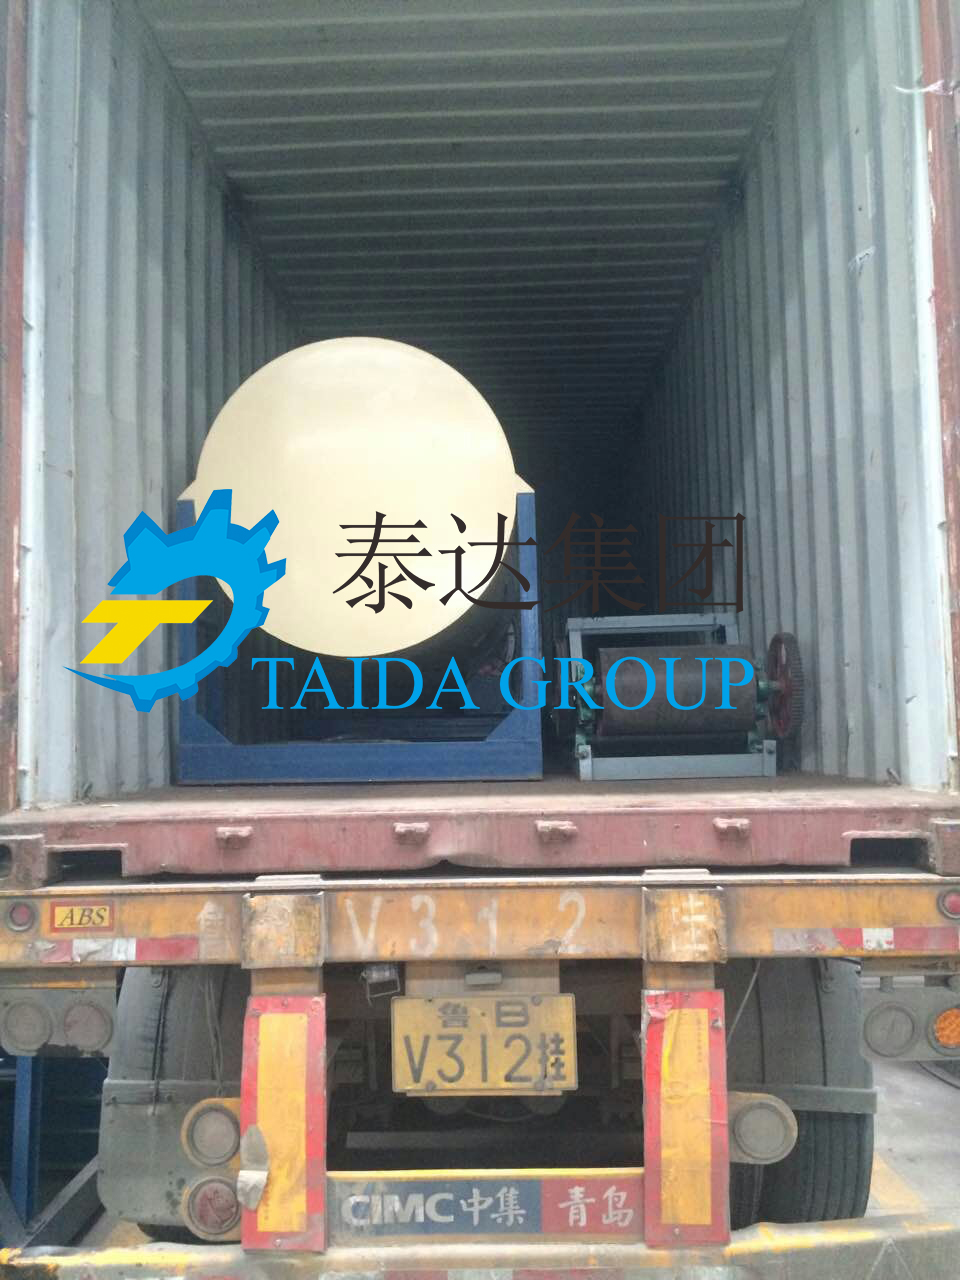 Shipping photos of sand dryer